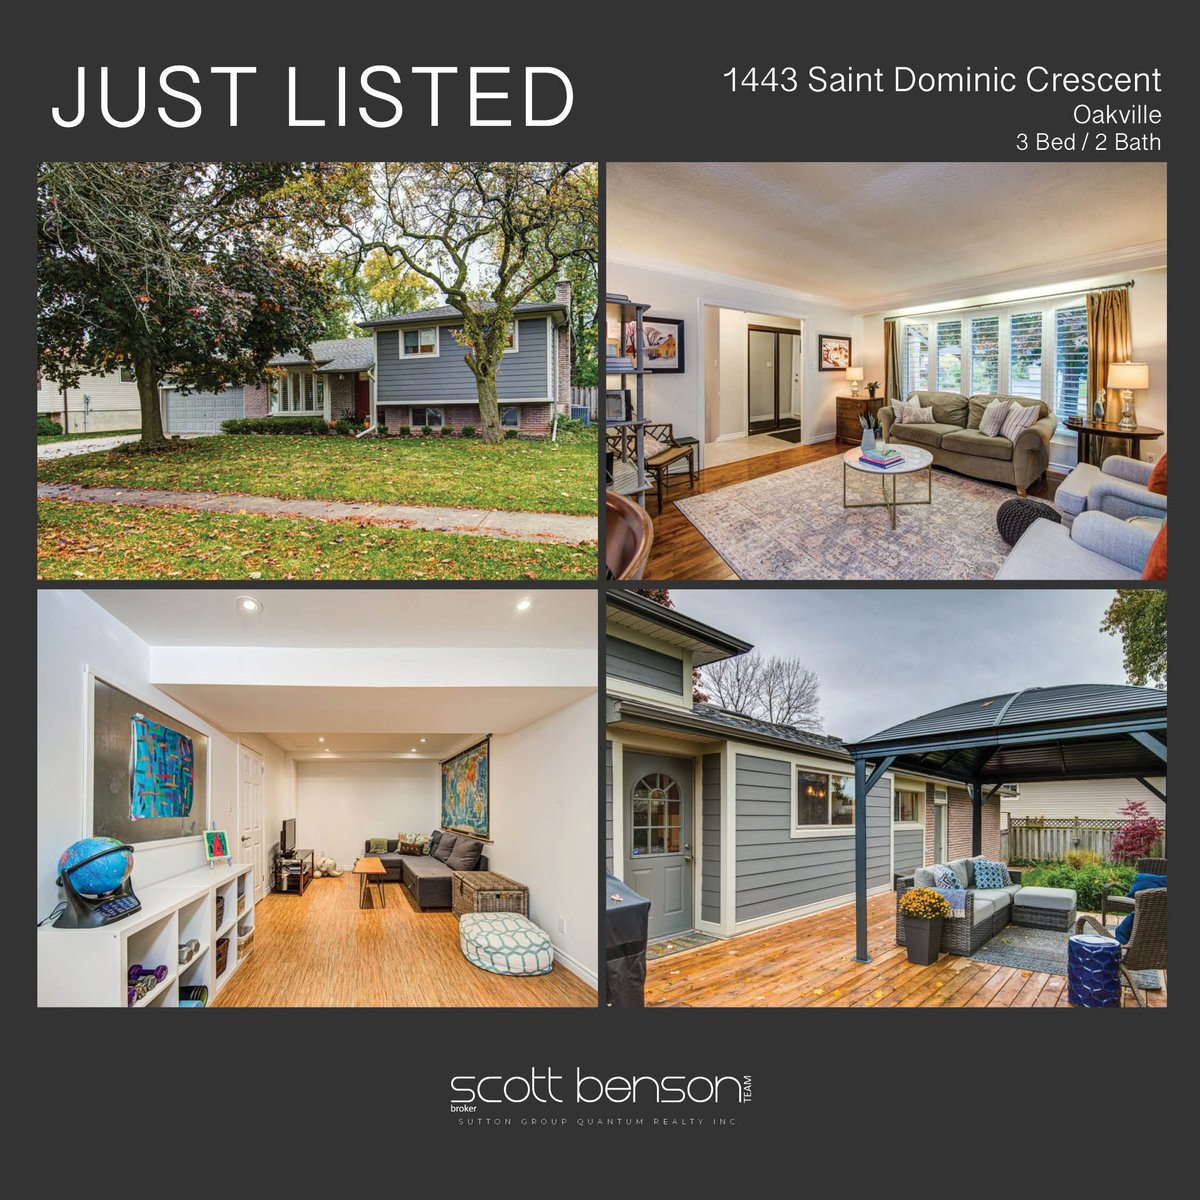 352 St Dominic Cres 🏡 3 🛏 / 2 🛁 $1,149,900 Oakville 📍  🔗 Click here to learn more: https://t.co/lyLJyqGMmR  #justlisted #bensonteamknows #realty #realtor #broker #realestate #househunting #interiordesign #homeforsale #forsale #property  #luxury #dreamhome #oakville https://t.co/InWslA5iGS